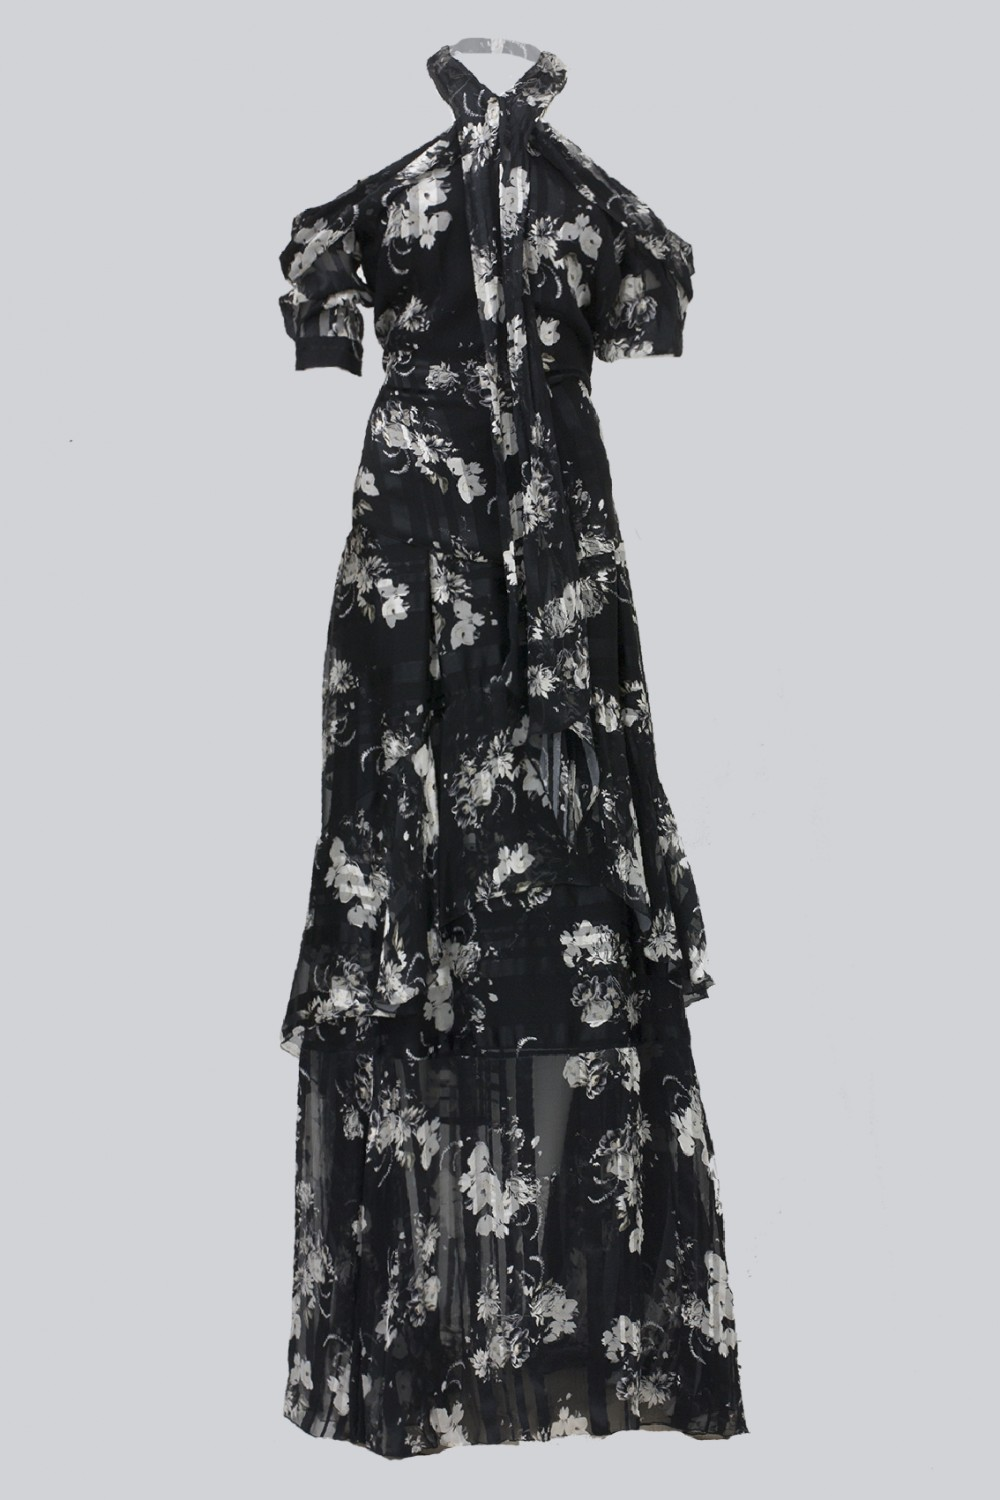 Top and skirt with floral pattern